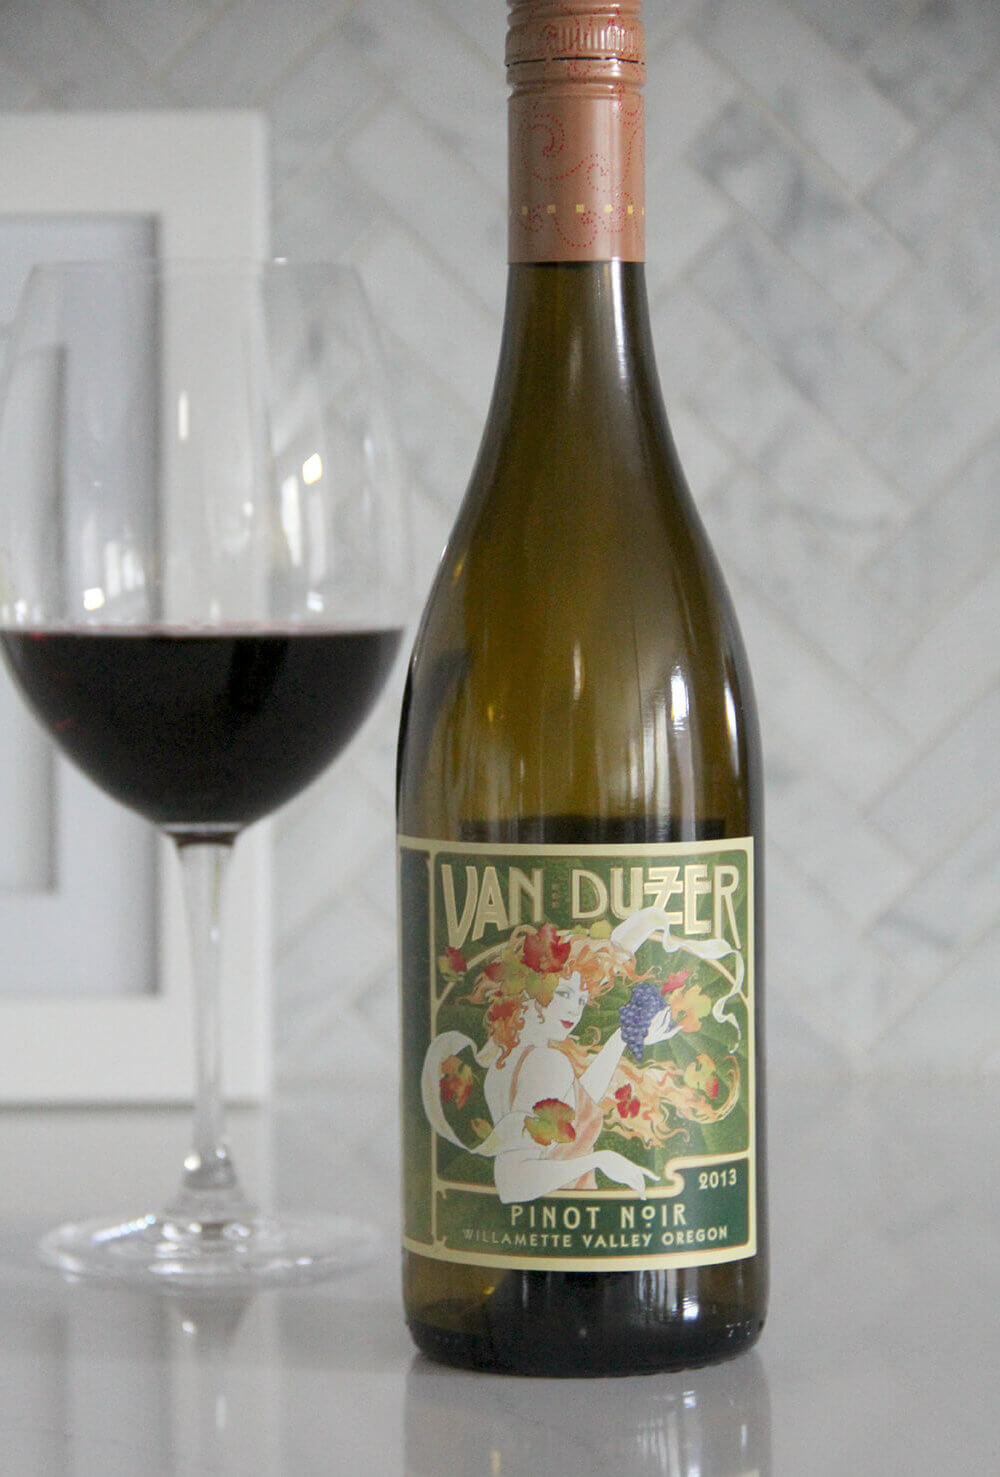 Award winning Van Duzer Willamette Valley Pinot Noir, 2013